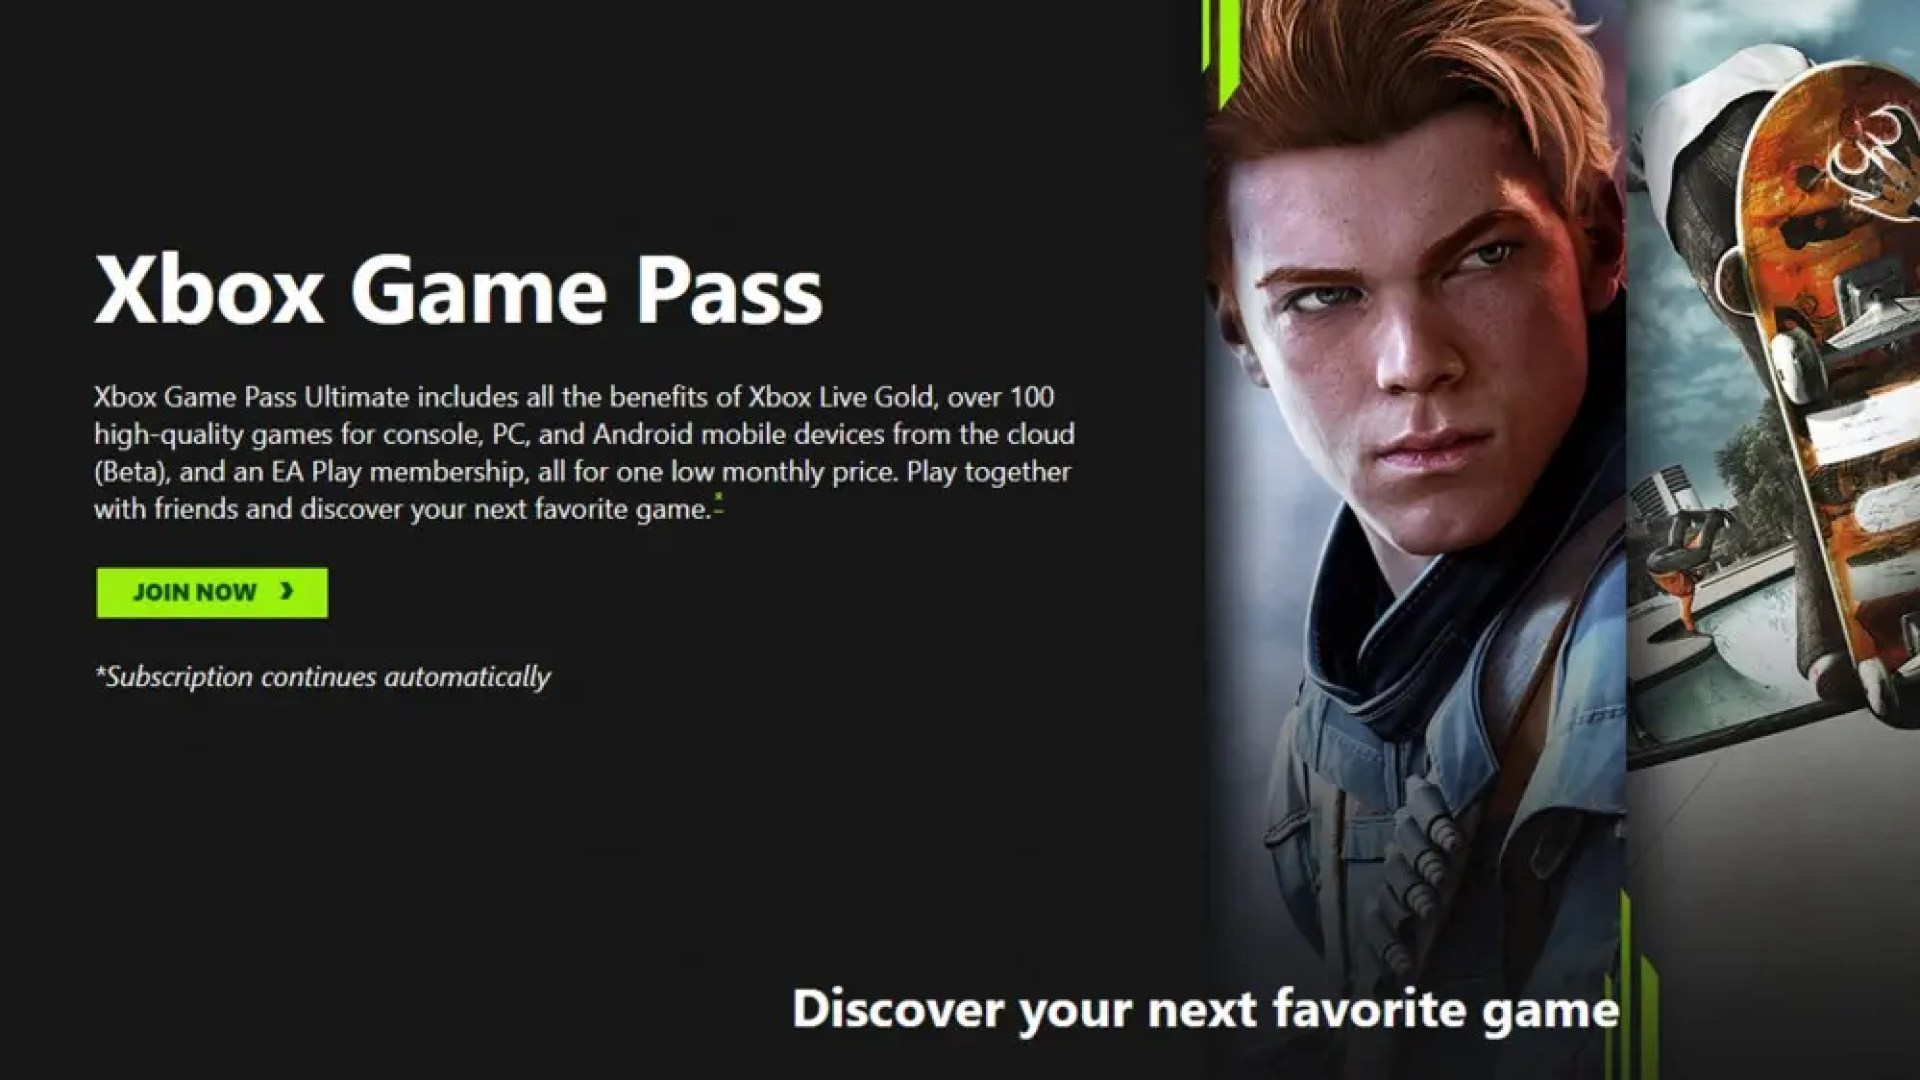 A screenshot from the Xbox Game Pass website.